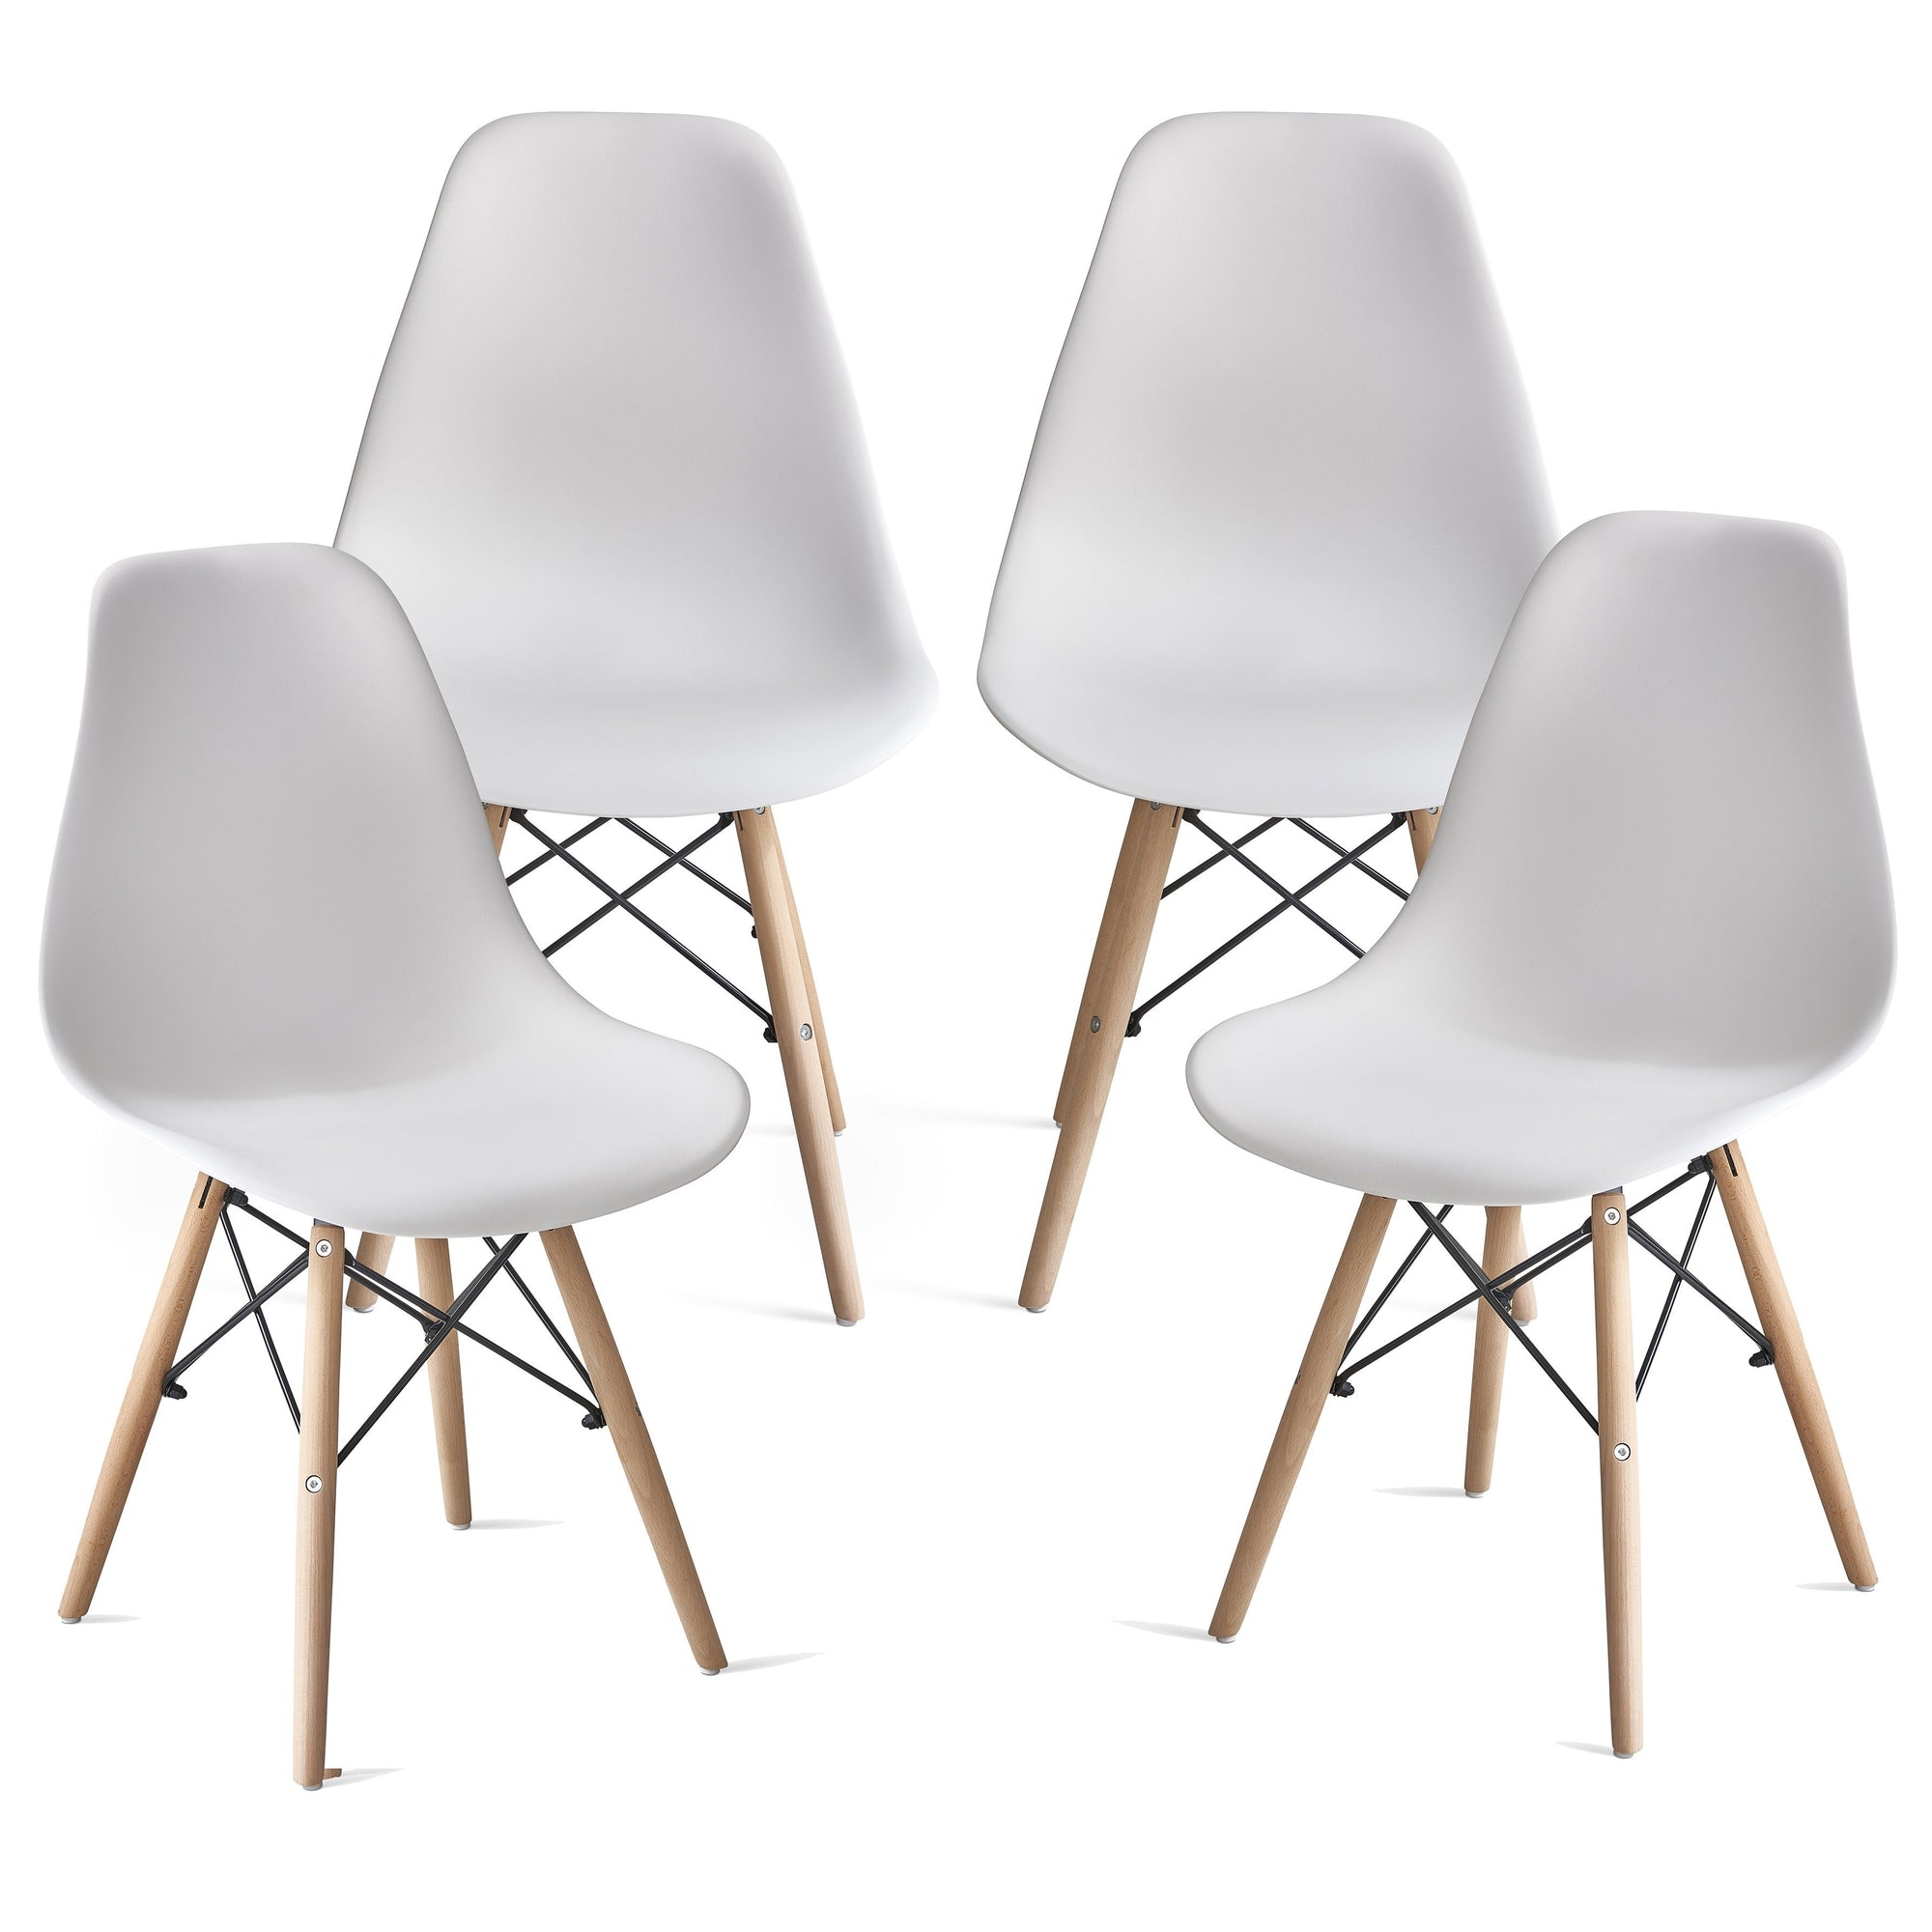 Chaise Inge Inspirée Eames Blanche x 4